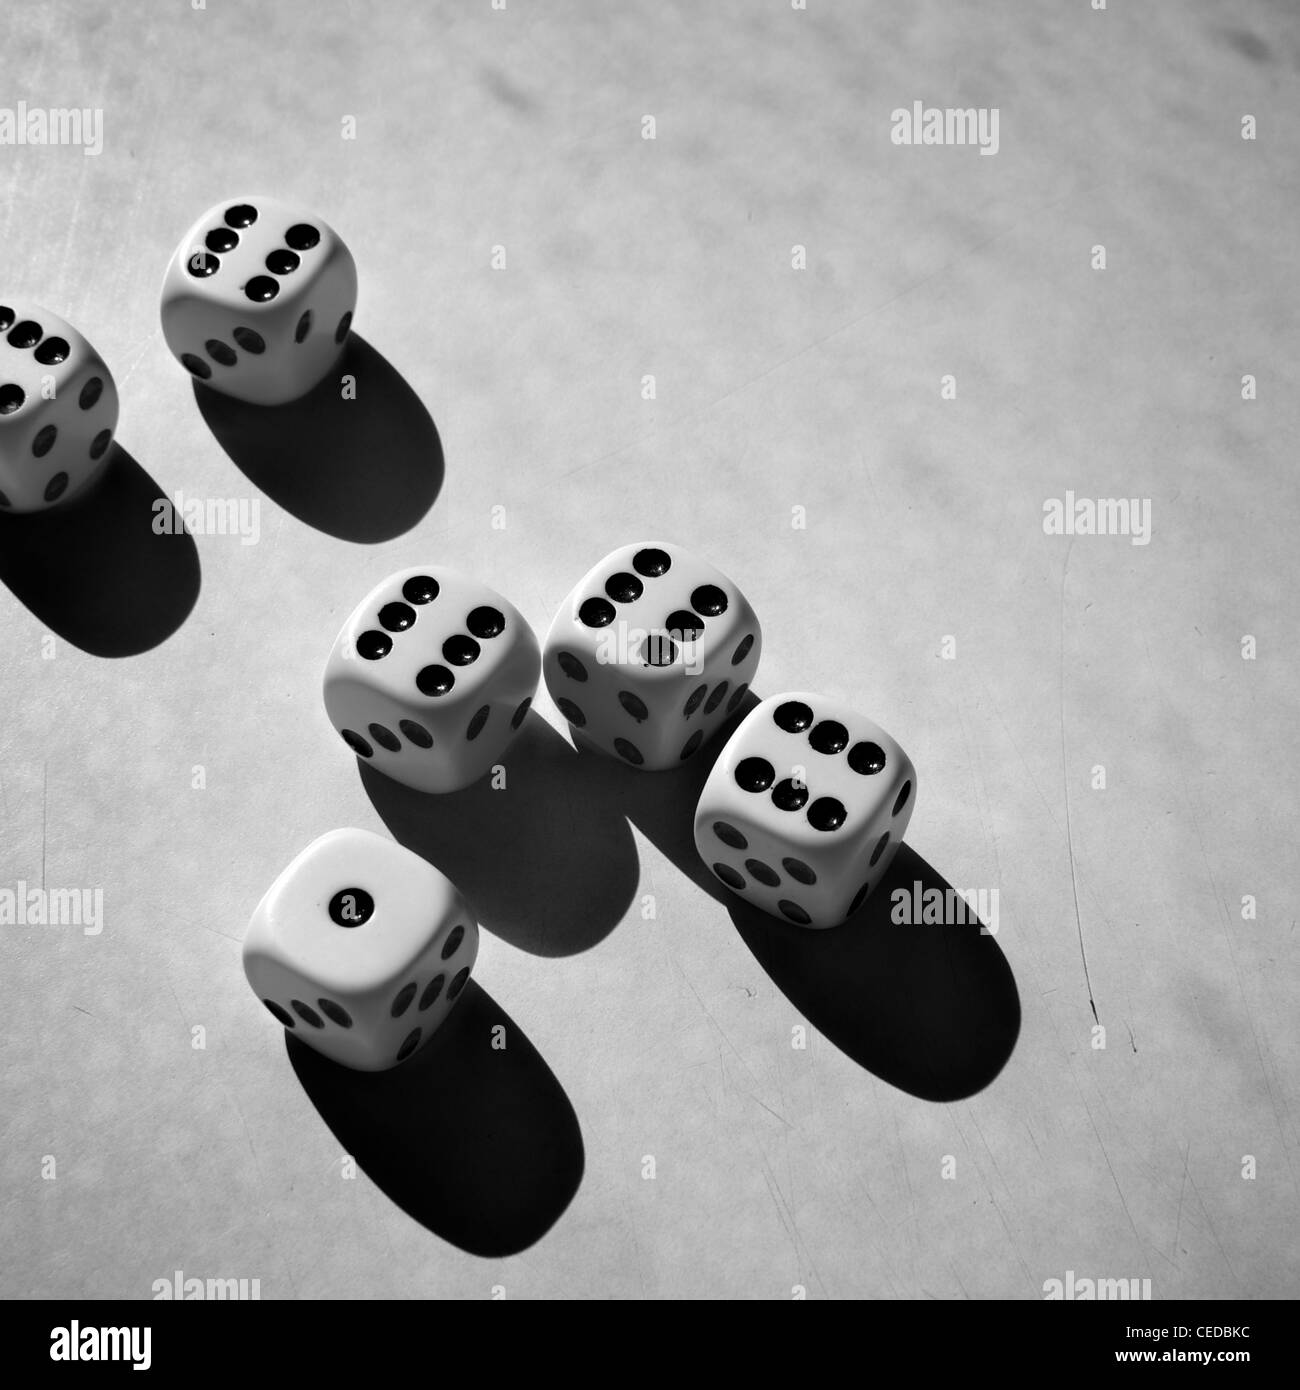 Six dices on a grungy scratched background surface. - Stock Image